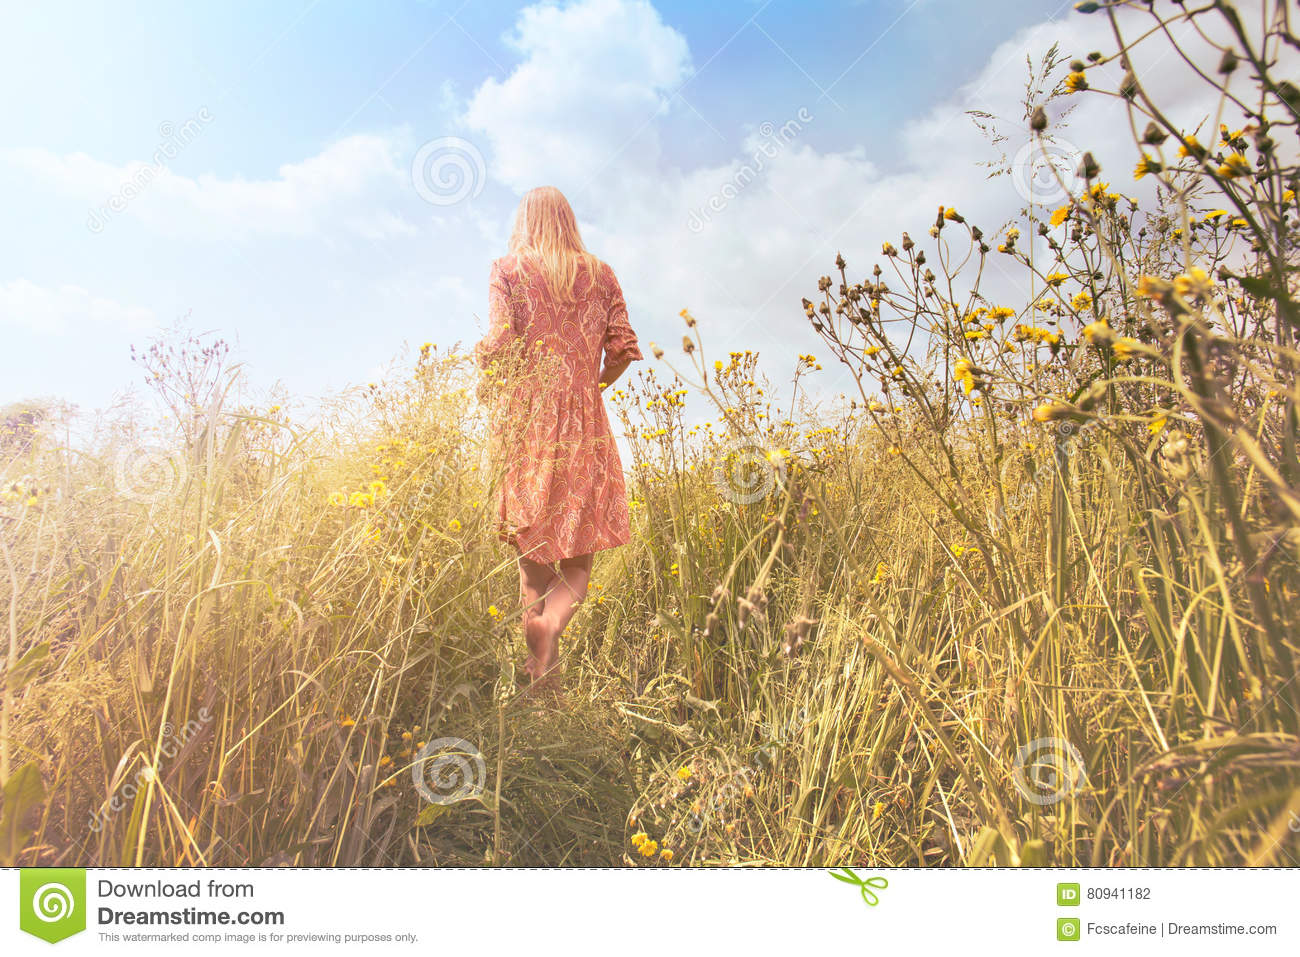 Nature Images 2mb: Dreamy Woman Walking In Nature Towards The Sun Stock Photo